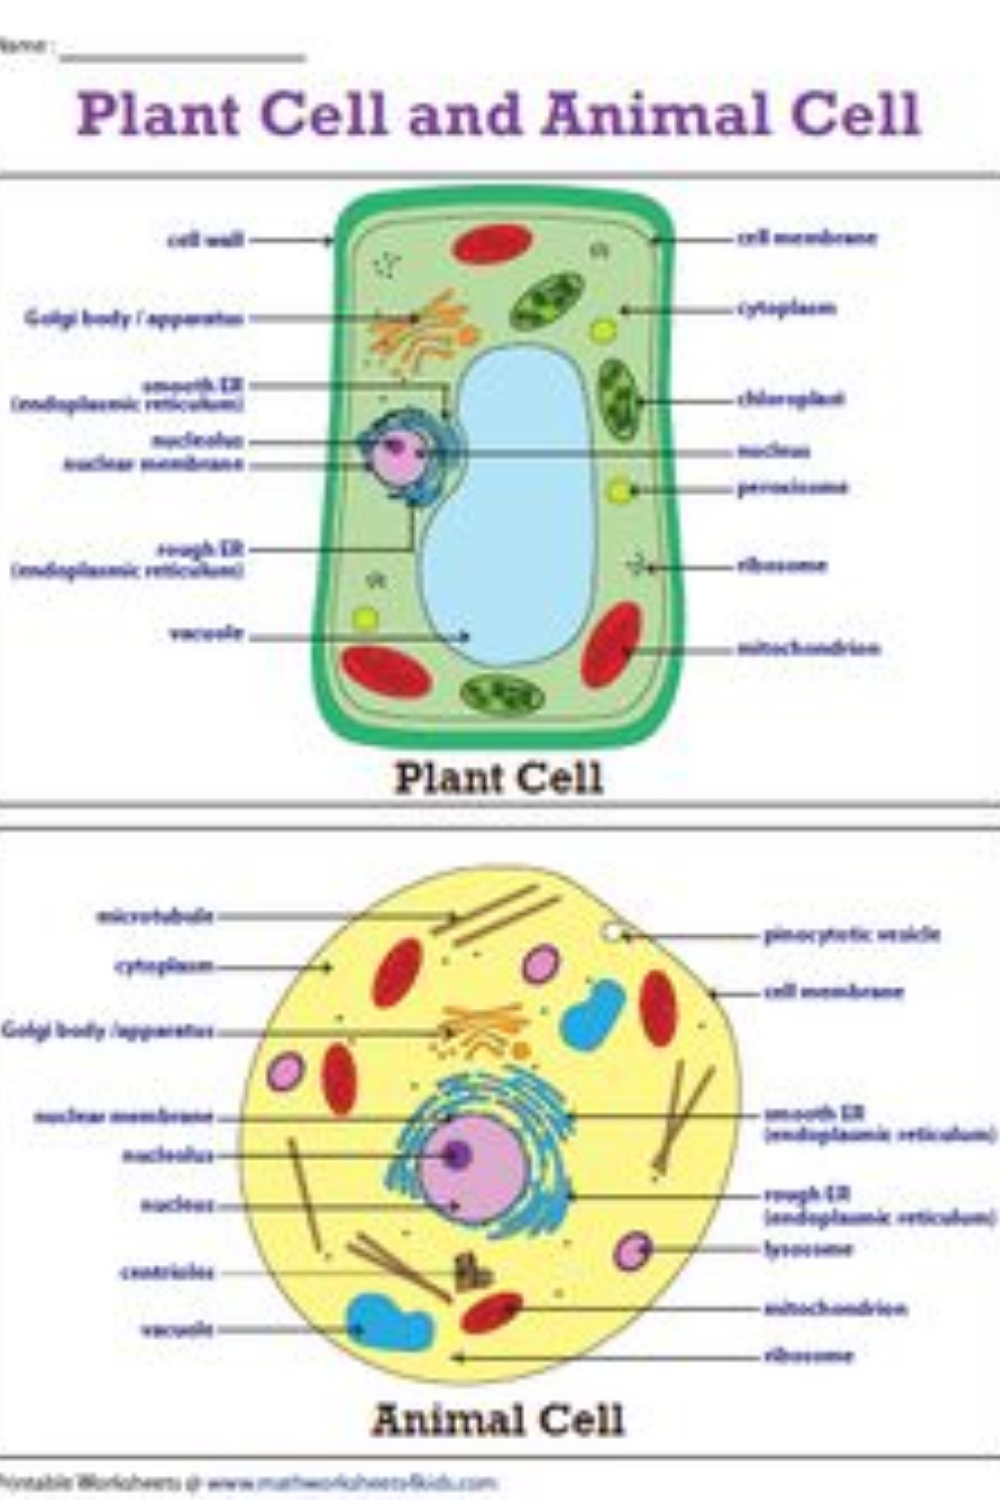 Plant Cell And Animal Cell Venn Diagram In 2020 Animal Cell Plant And Animal Cells Plant Cell